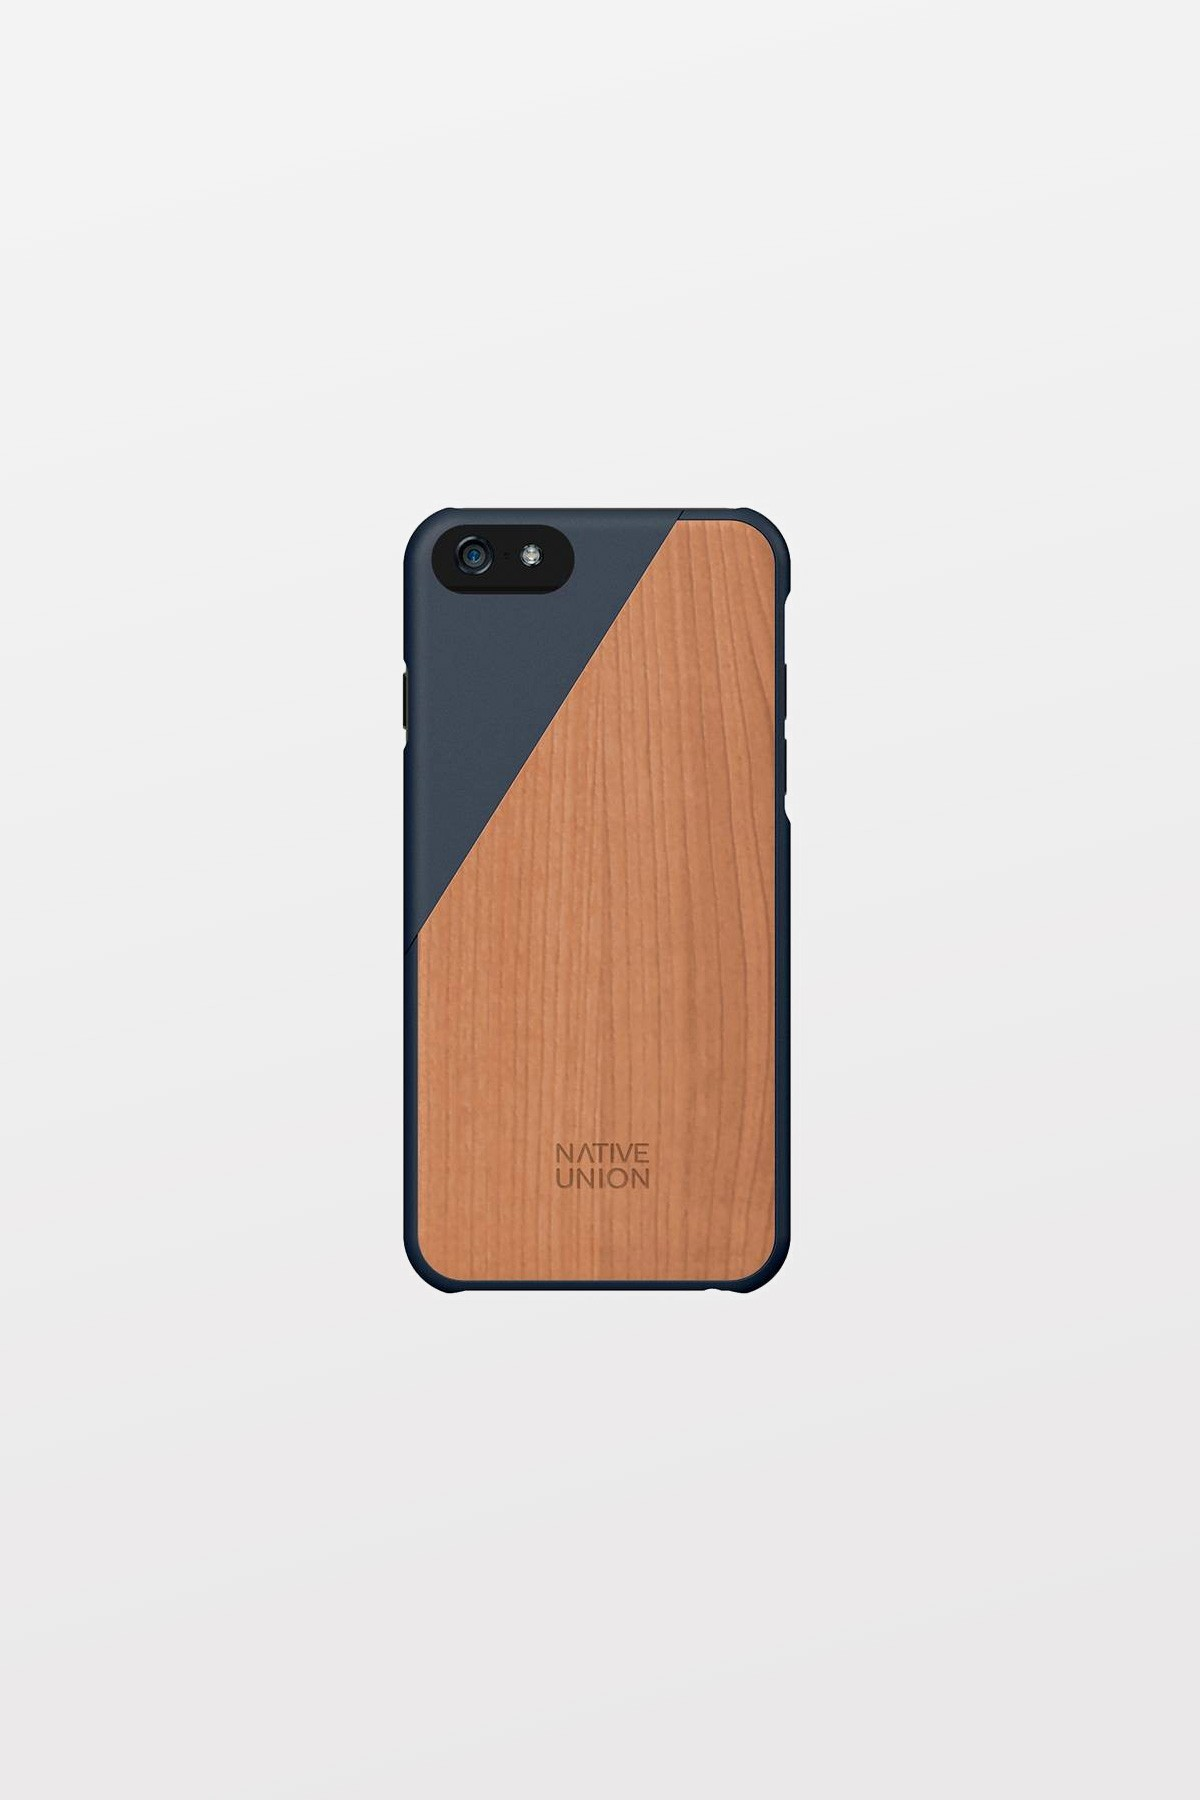 Native Union CLIC Wooden for iPhone 6 Plus/6S Plus - Marine